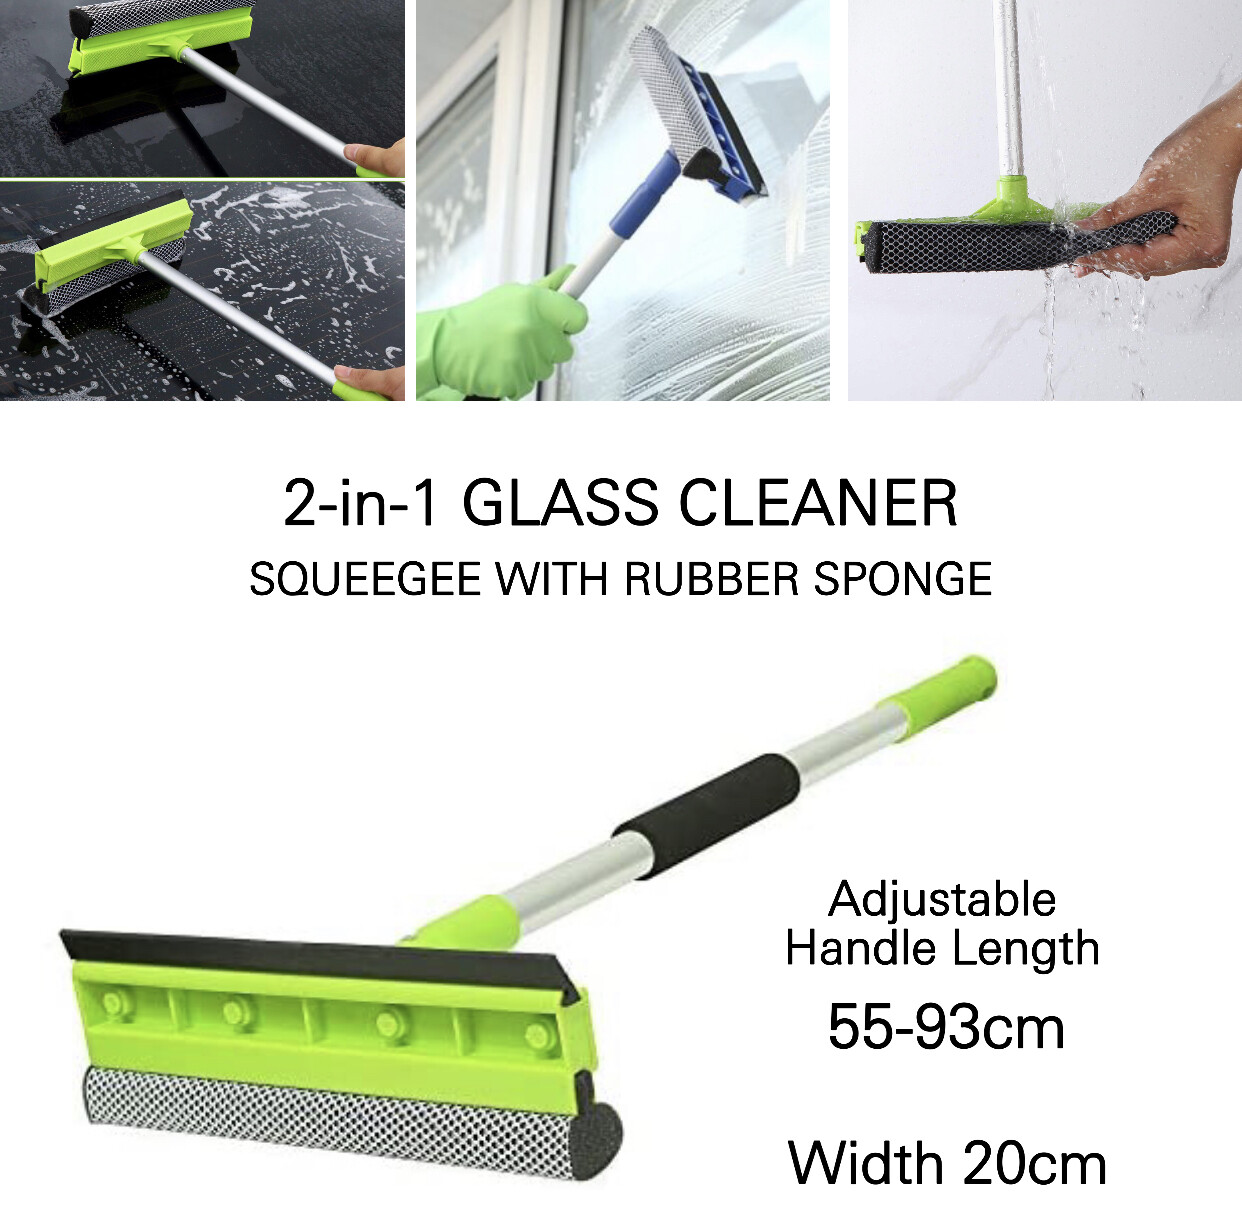 2-in-1 Glass Cleaner